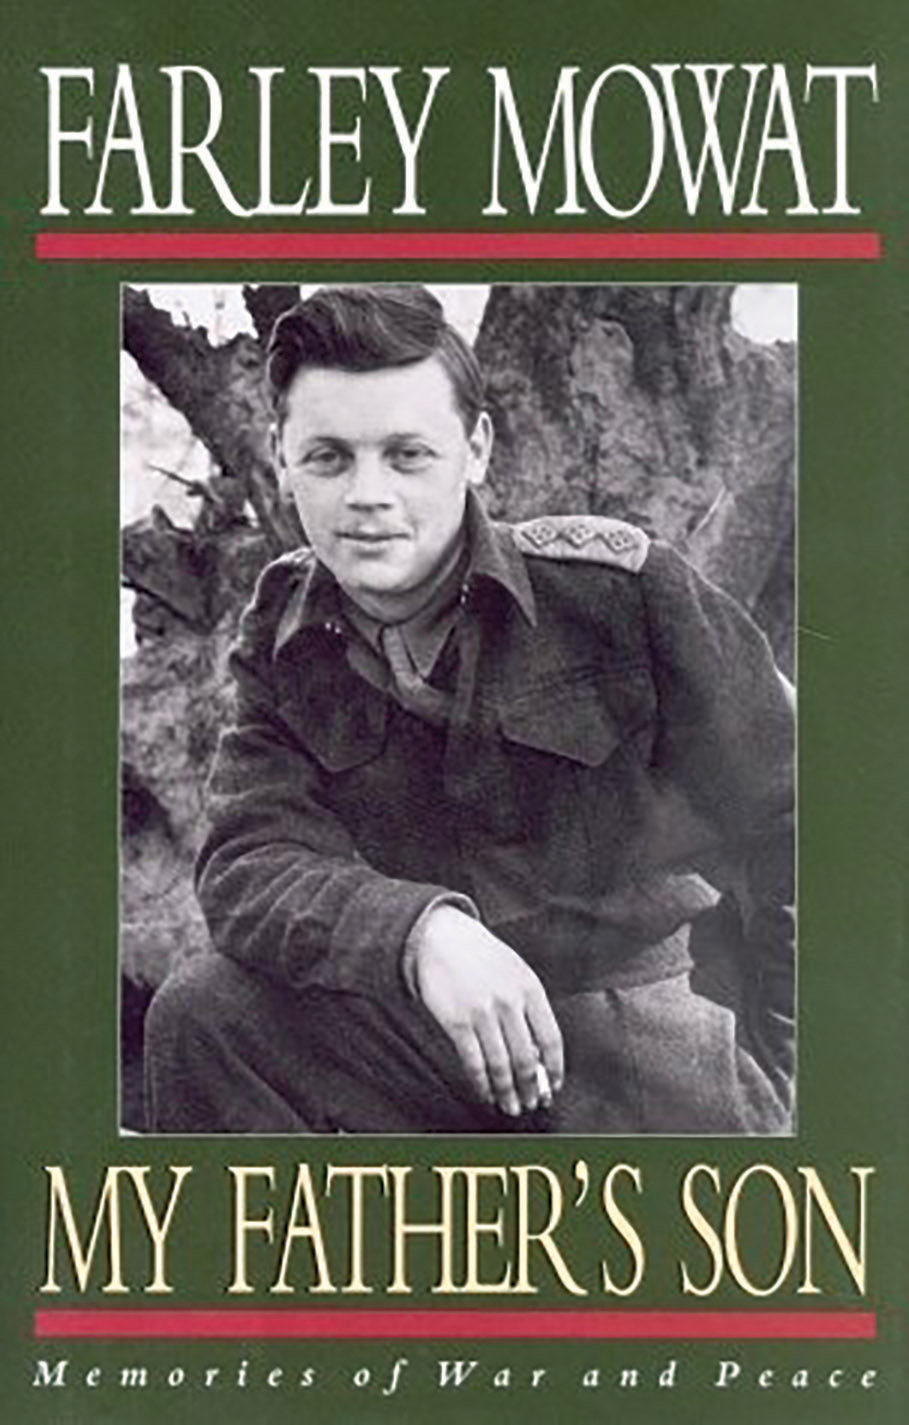 Farley Mowat's recollection of his wartime service provide a vivid perspective.Photo courtesy Barry Penhale